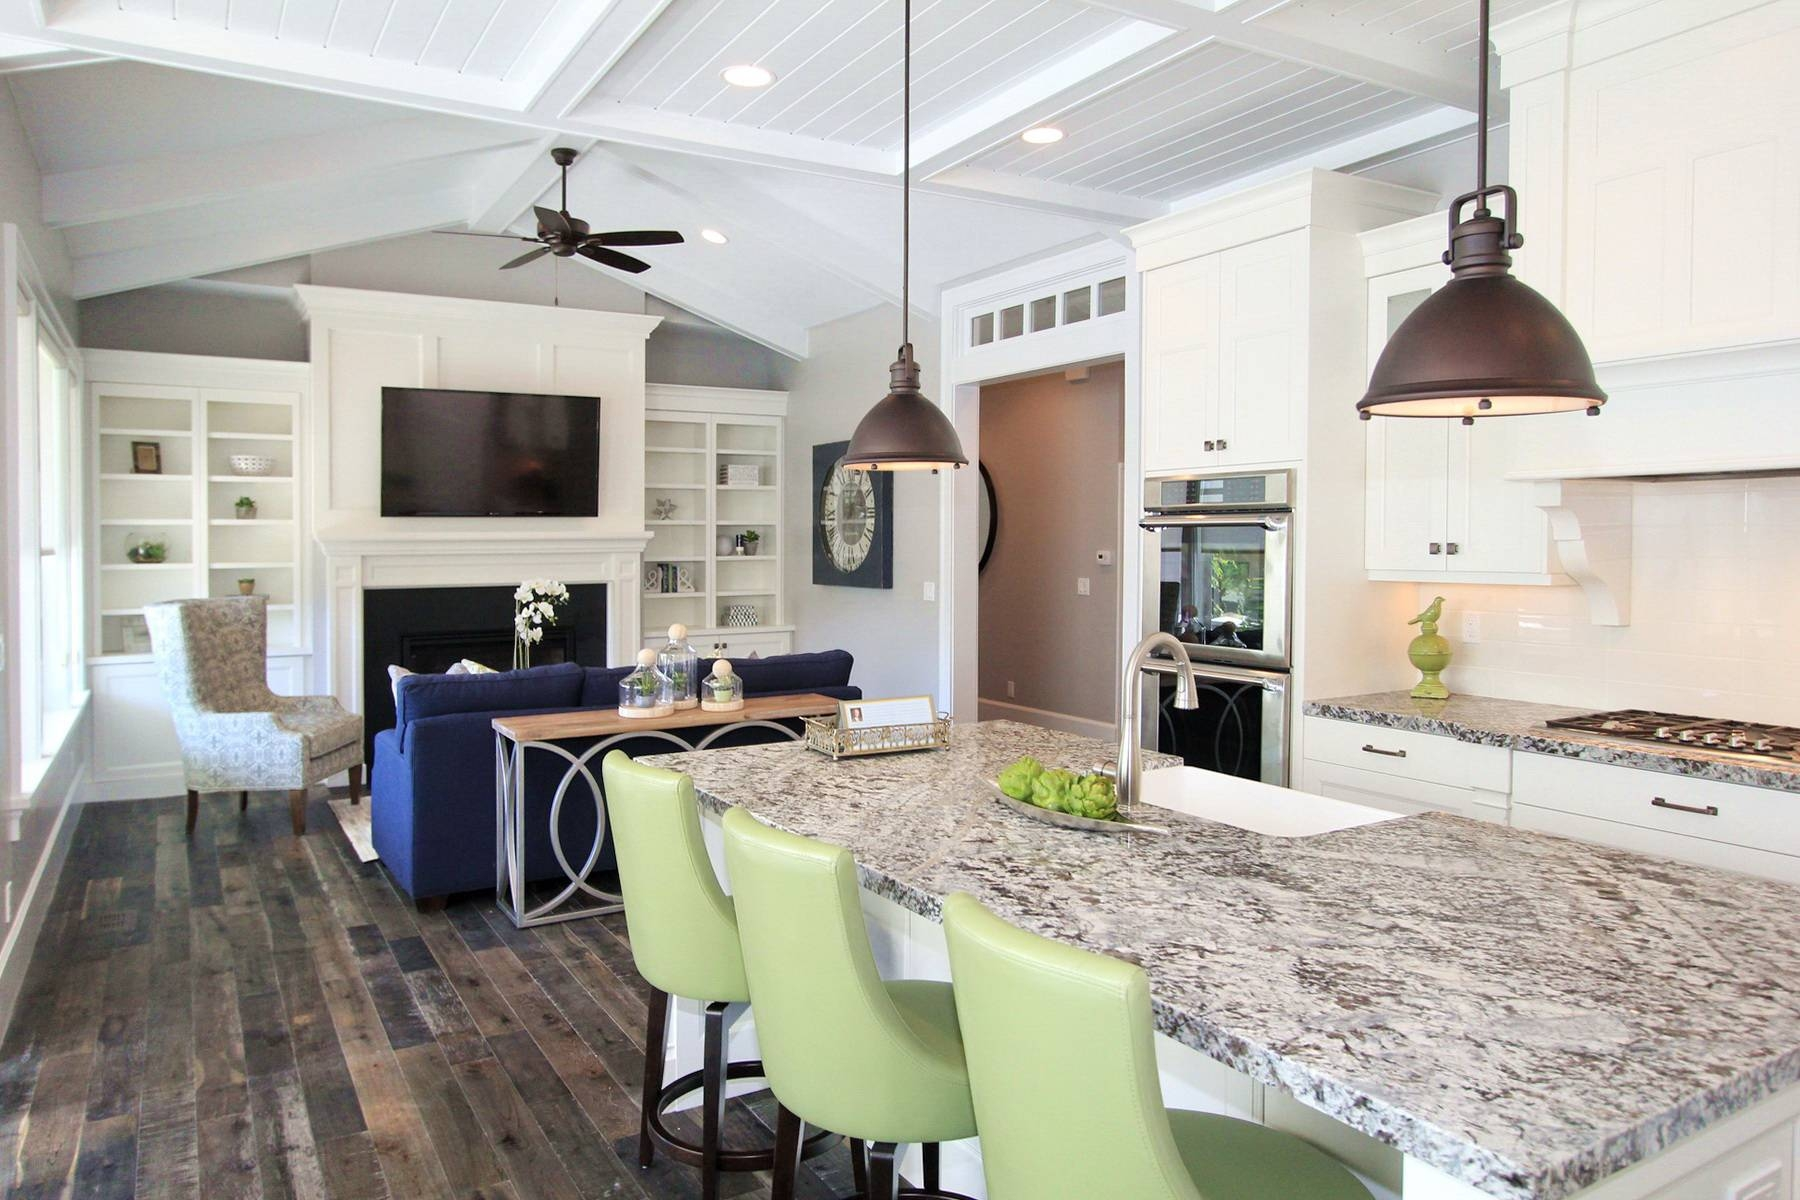 Lighting Fixtures : The Farmhouse Style Lighting Fixtures – Ana with Farmhouse Style Pendant Lighting (Image 10 of 15)